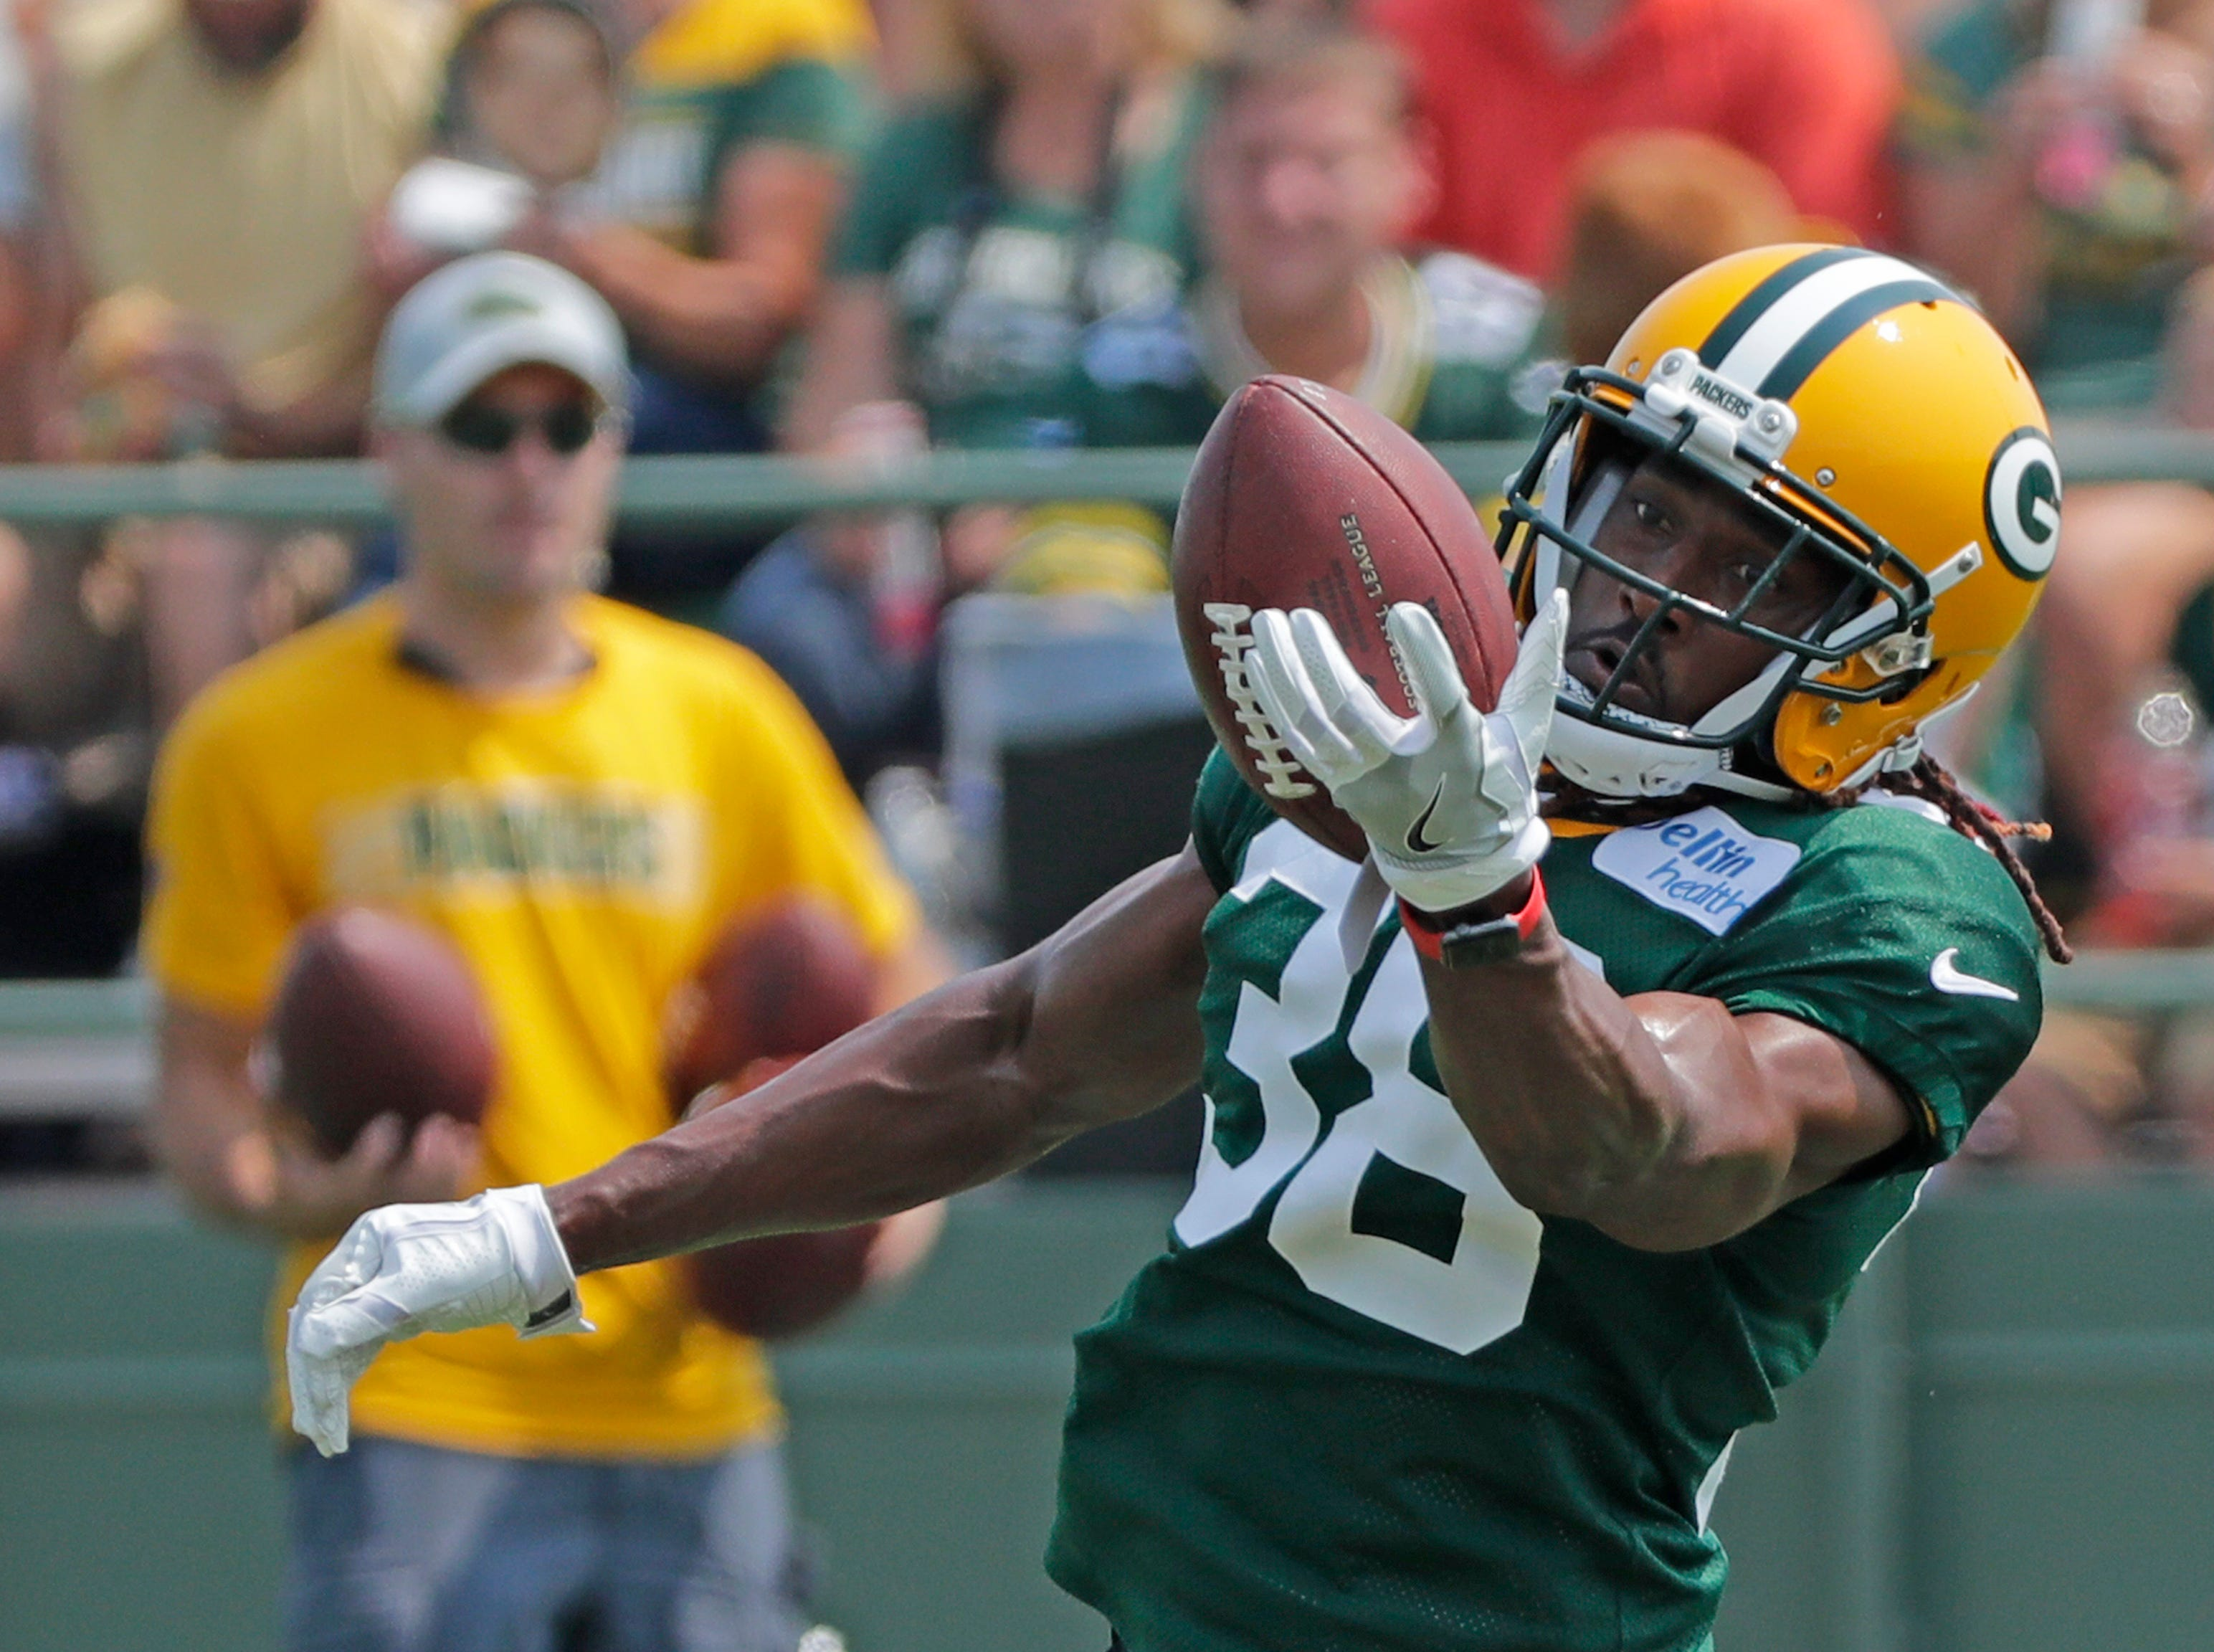 Green Bay Packers defensive back Tramon Williams (38) during training camp practice at Ray Nitschke Field on Sunday, August 12, 2018 in Ashwaubenon, Wis. 